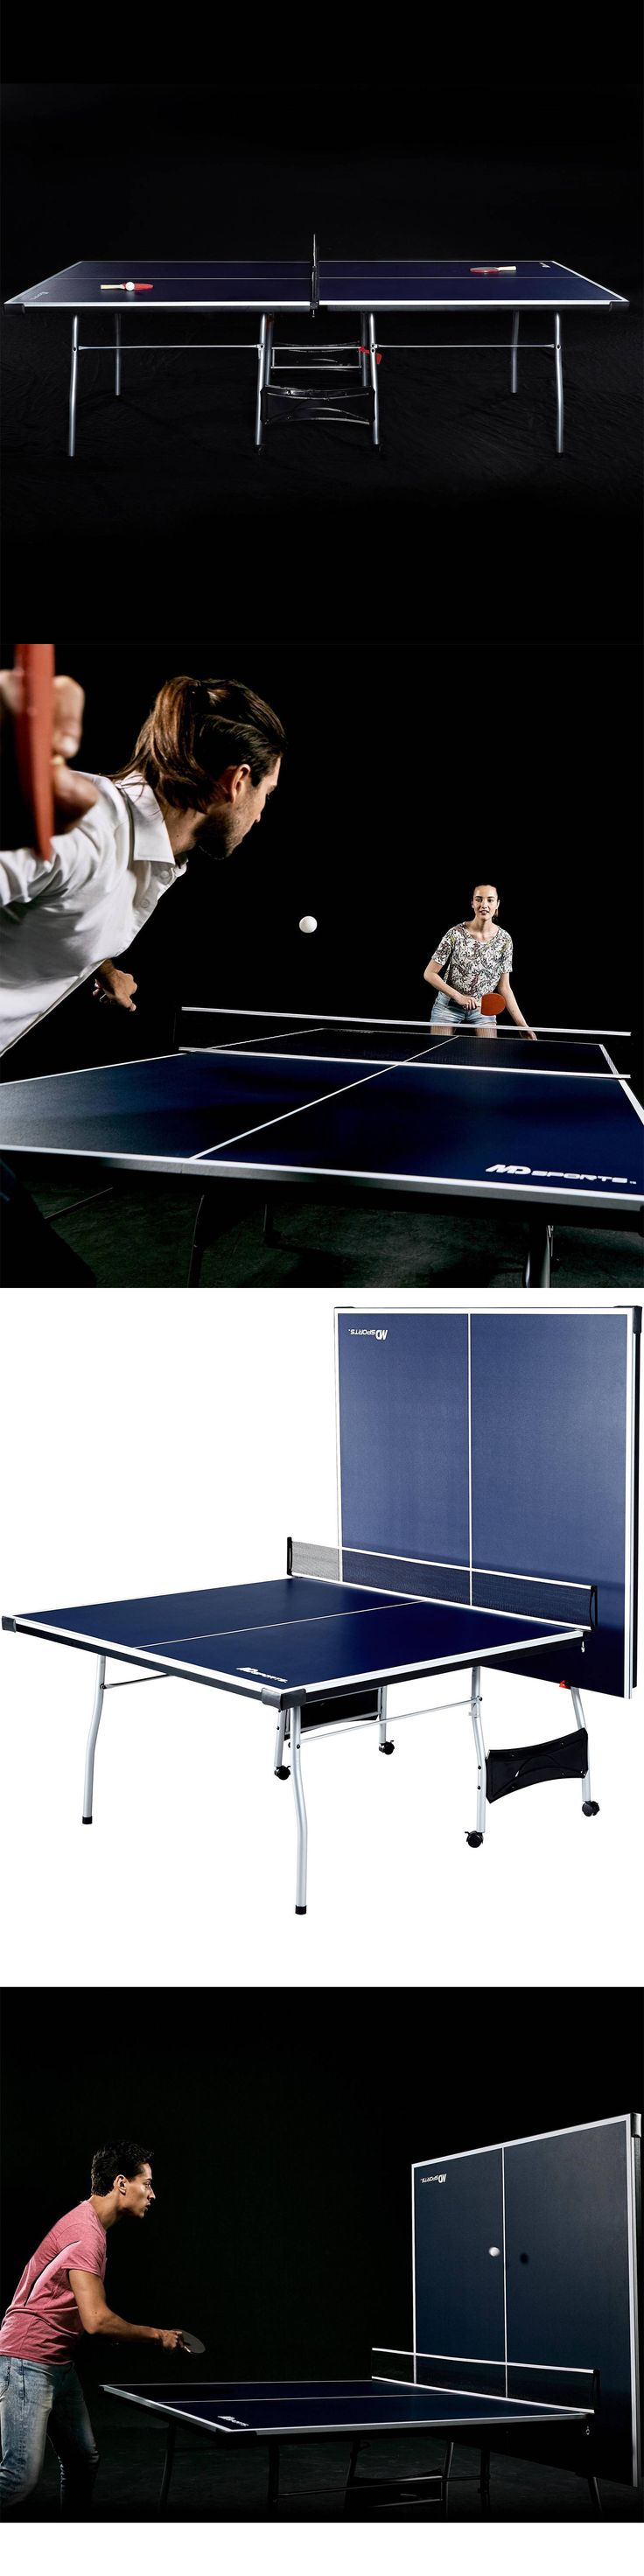 Tables 97075: Ping Pong Table Indoor Outdoor Table Tennis Foldable Tournament Size 4-Piece New -> BUY IT NOW ONLY: $139.75 on eBay!